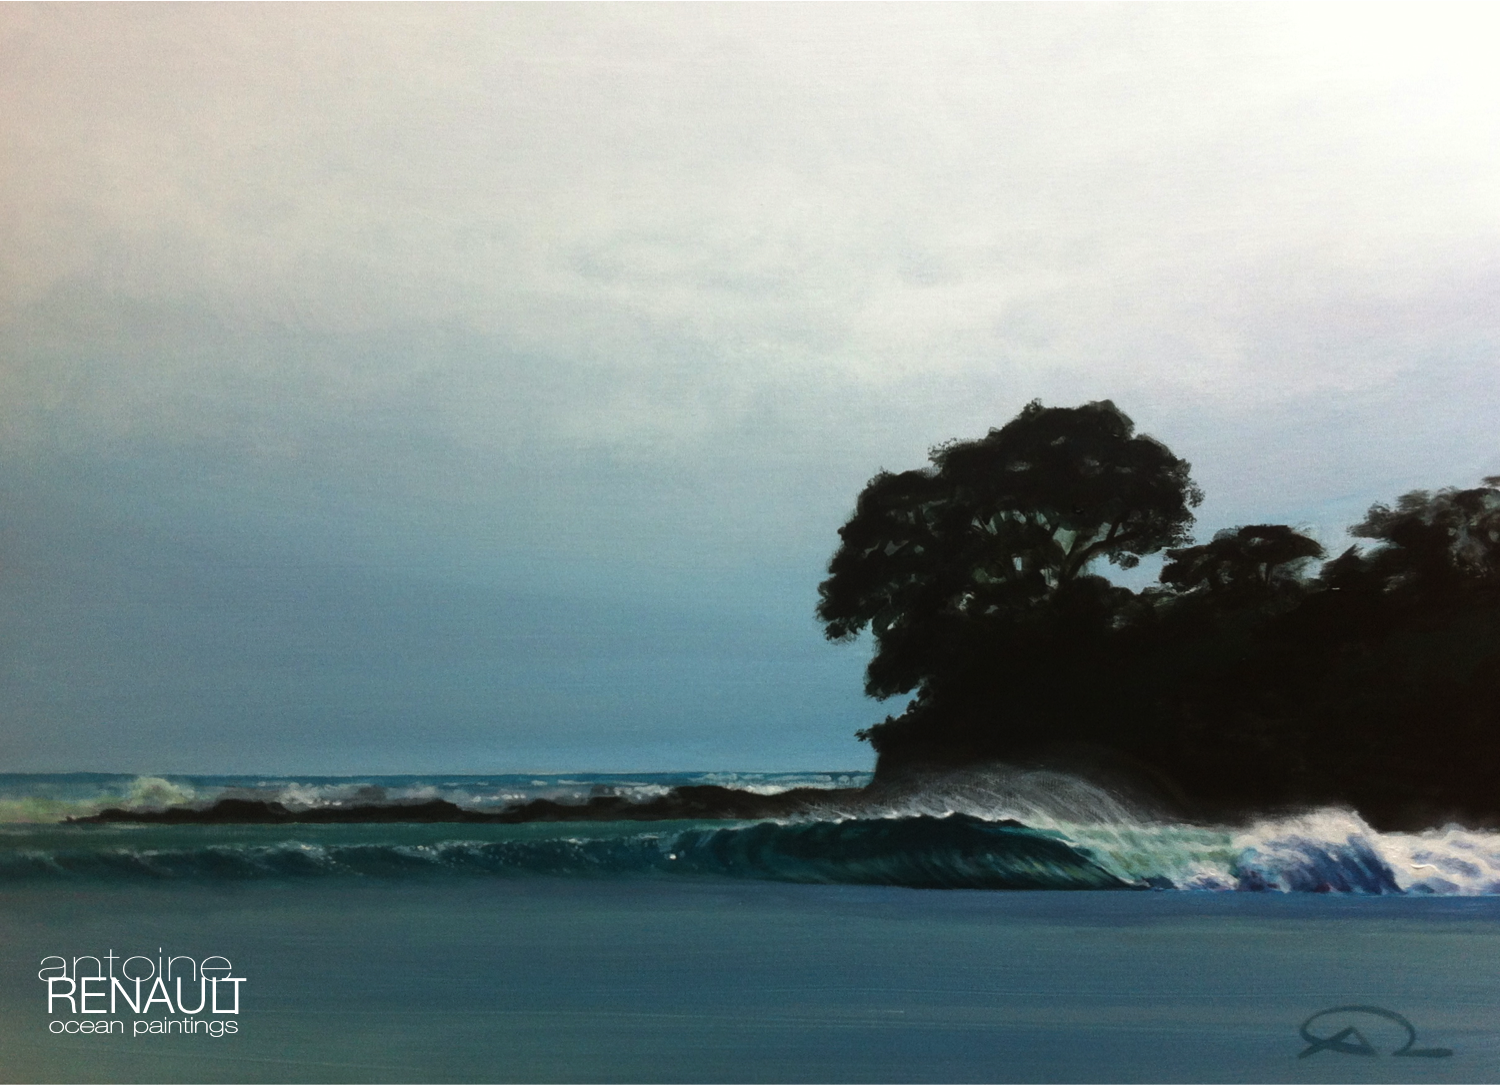 """Wave 04""  - A renault 2013 - Acrylic on canvas 73x54cm"